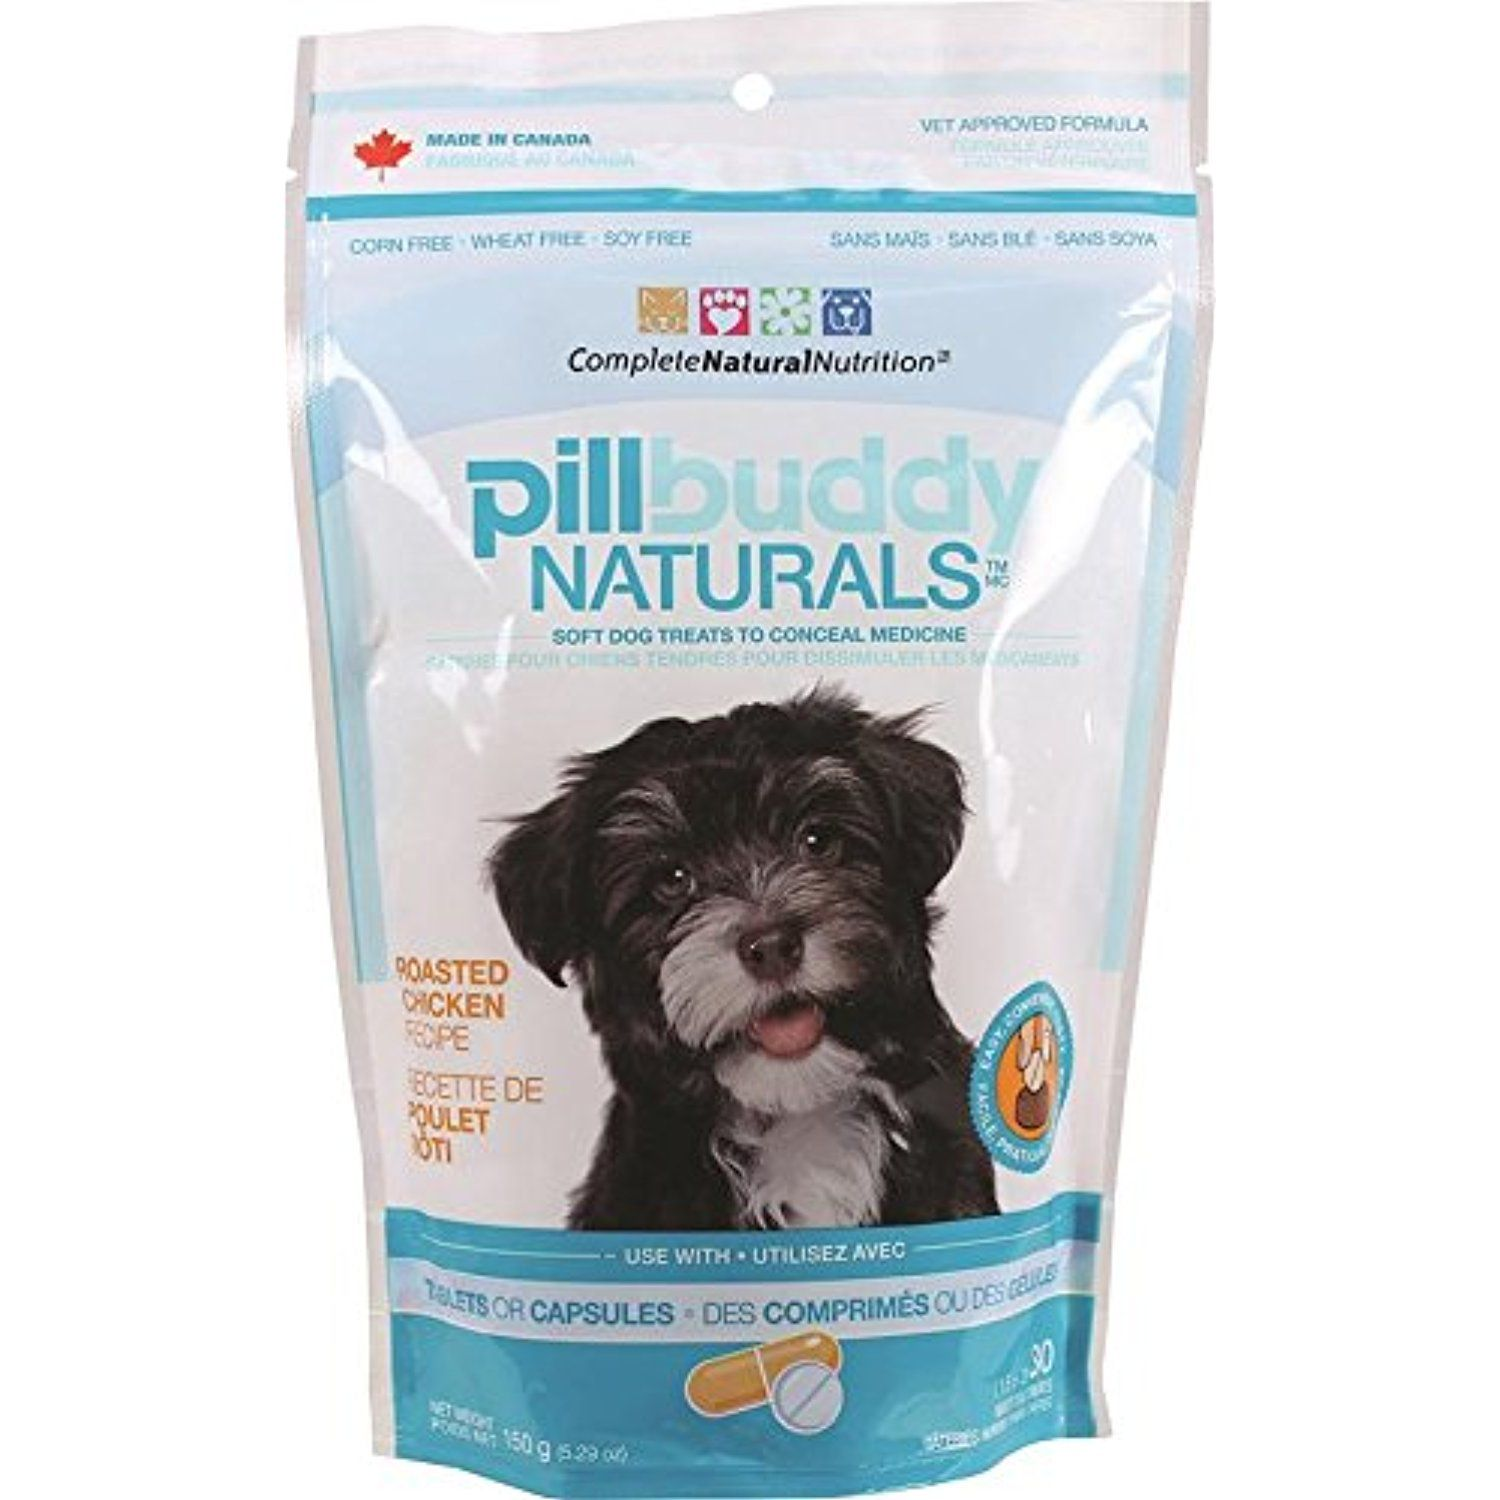 Complete Natural Nutrition Pill Buddy Naturals 30 Count Chicken